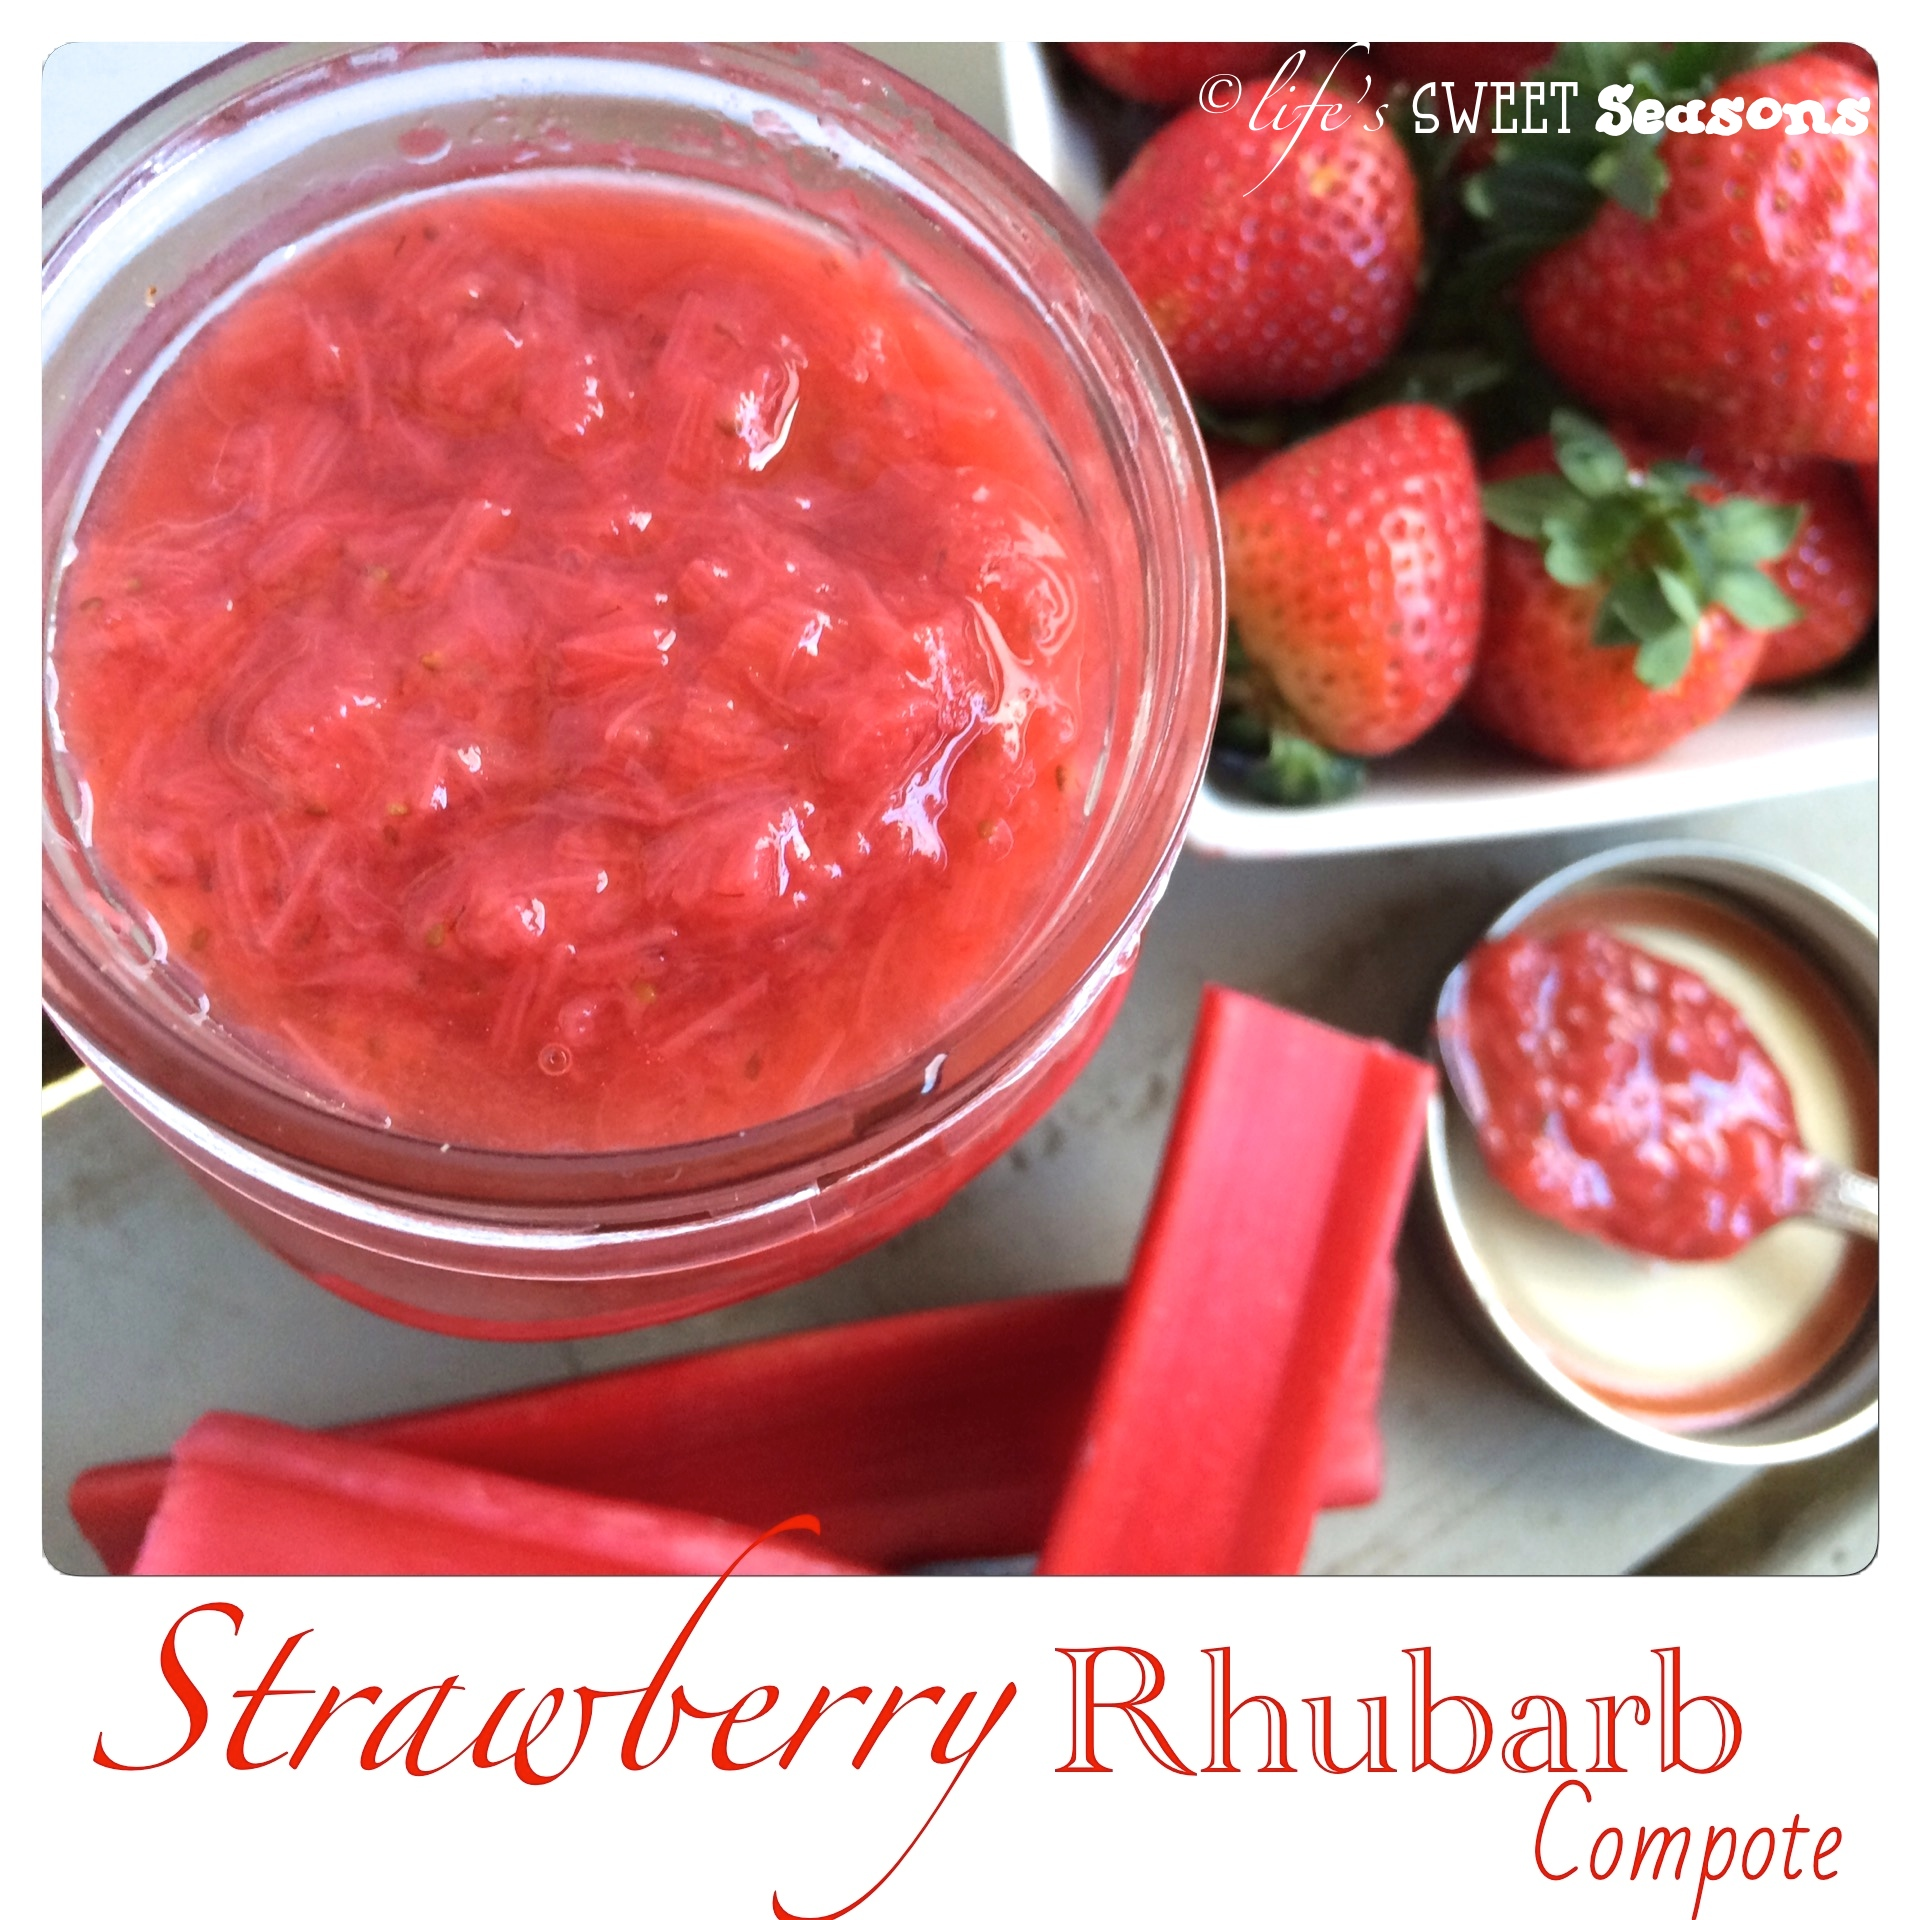 Strawberry Rhubarb Compote | Life's Sweet Seasons